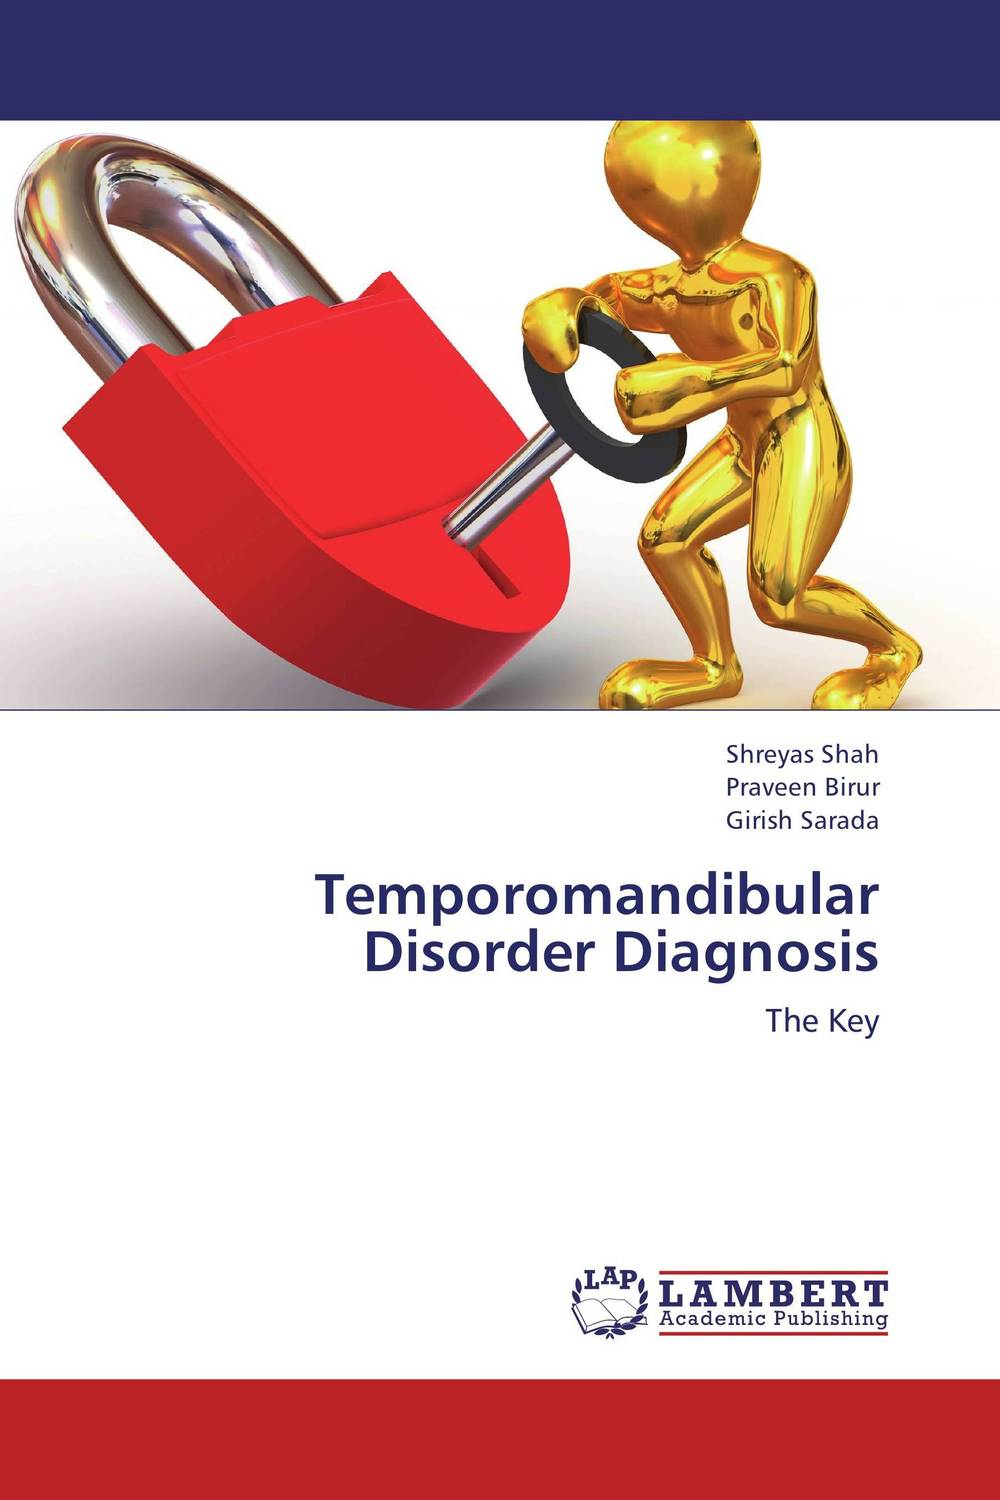 Temporomandibular Disorder Diagnosis temporomandibular disorder